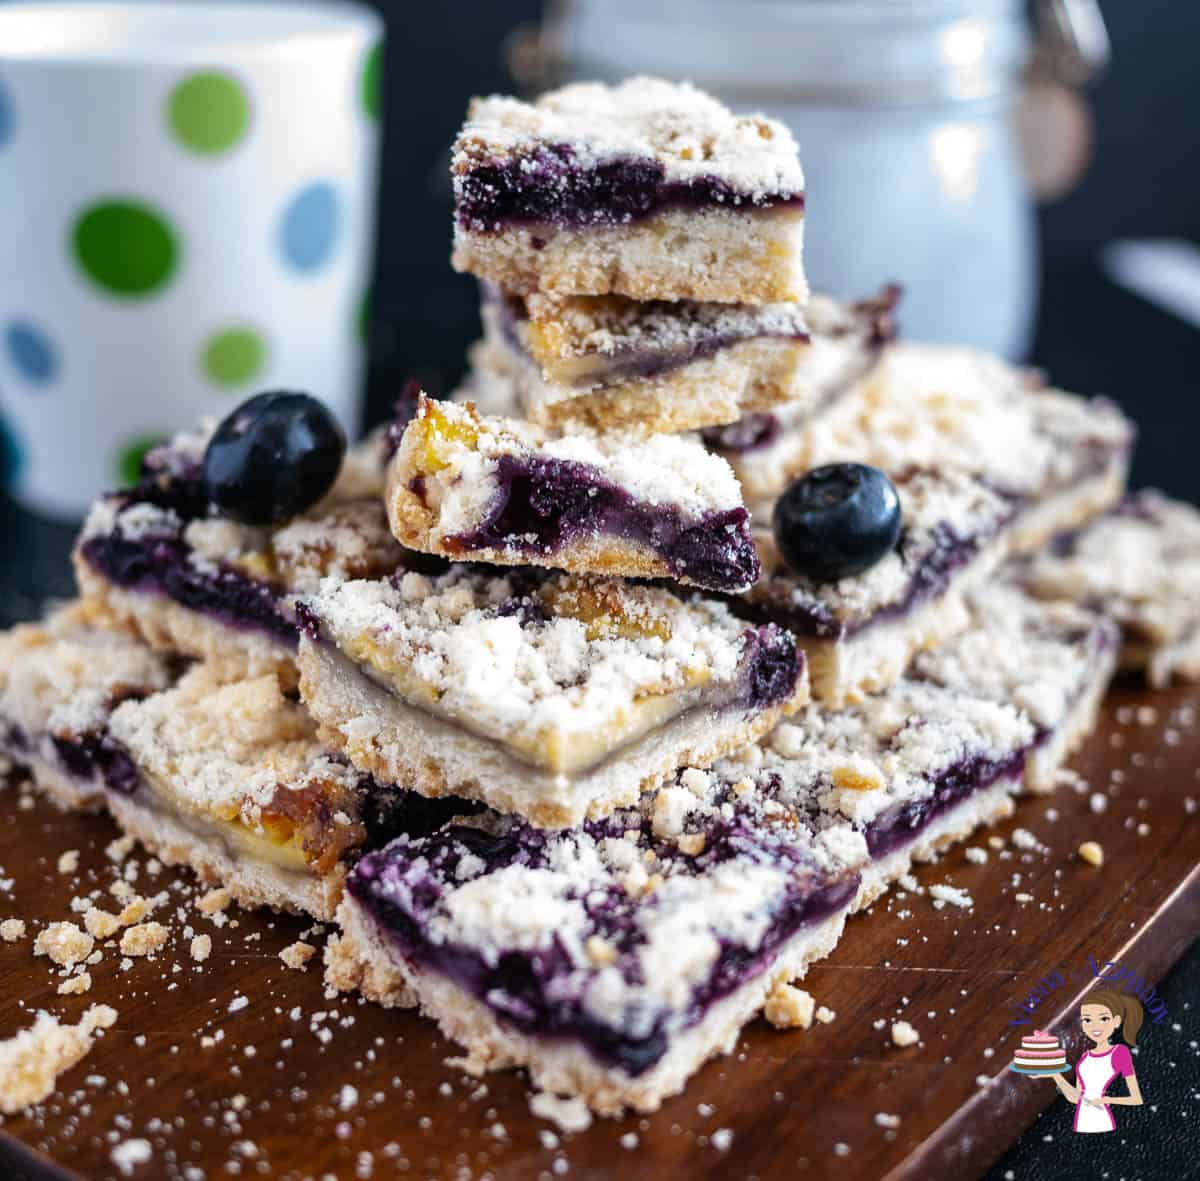 Stack of blueberry bars on a wooden board